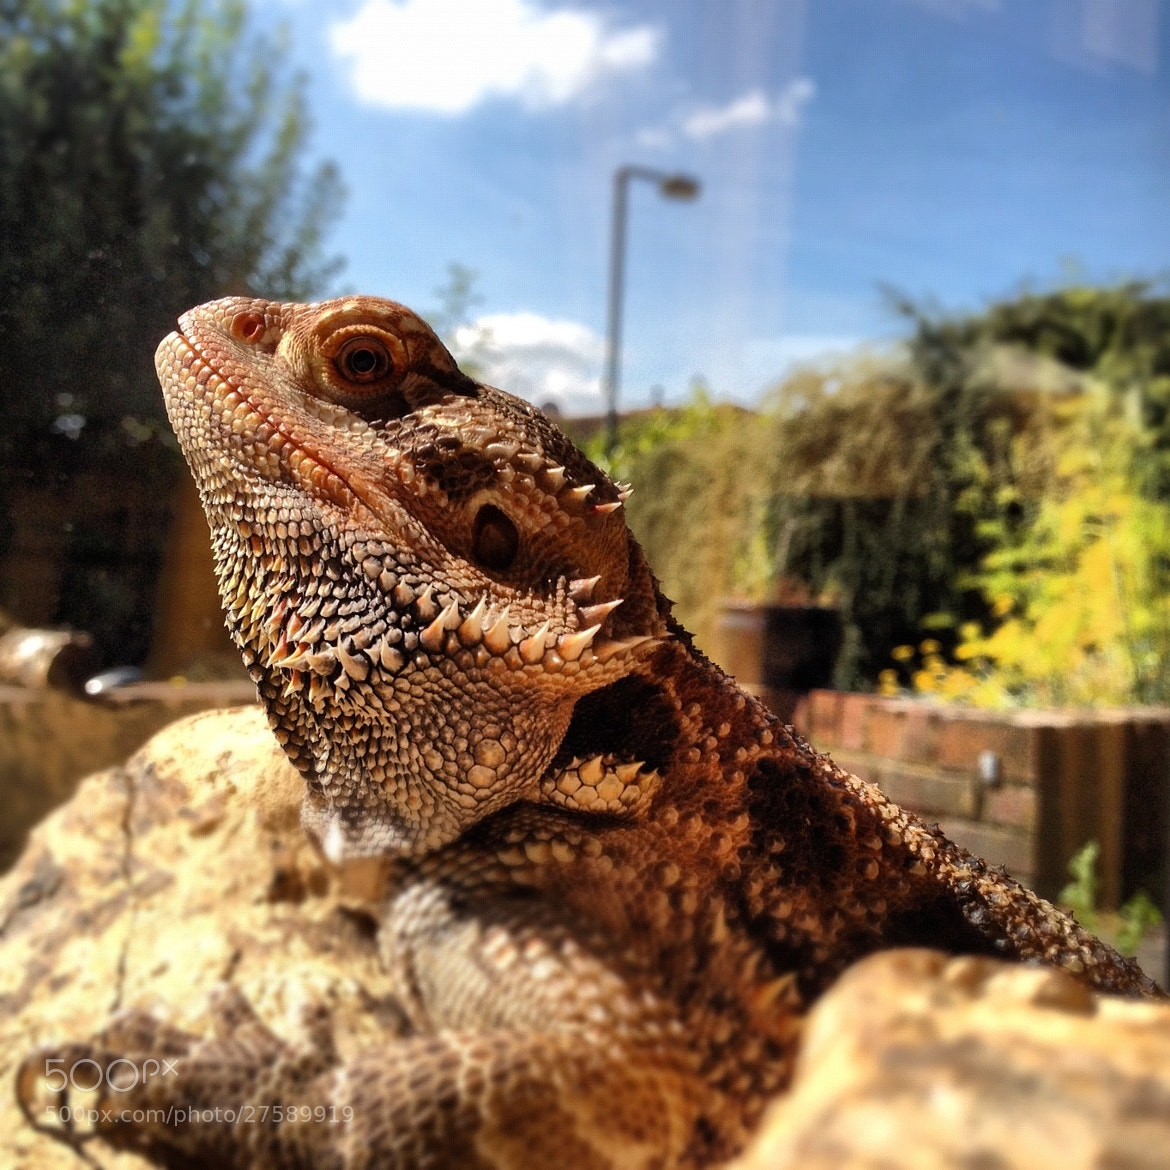 Photograph Lizard Portrait 3 by Dave Hornsby on 500px